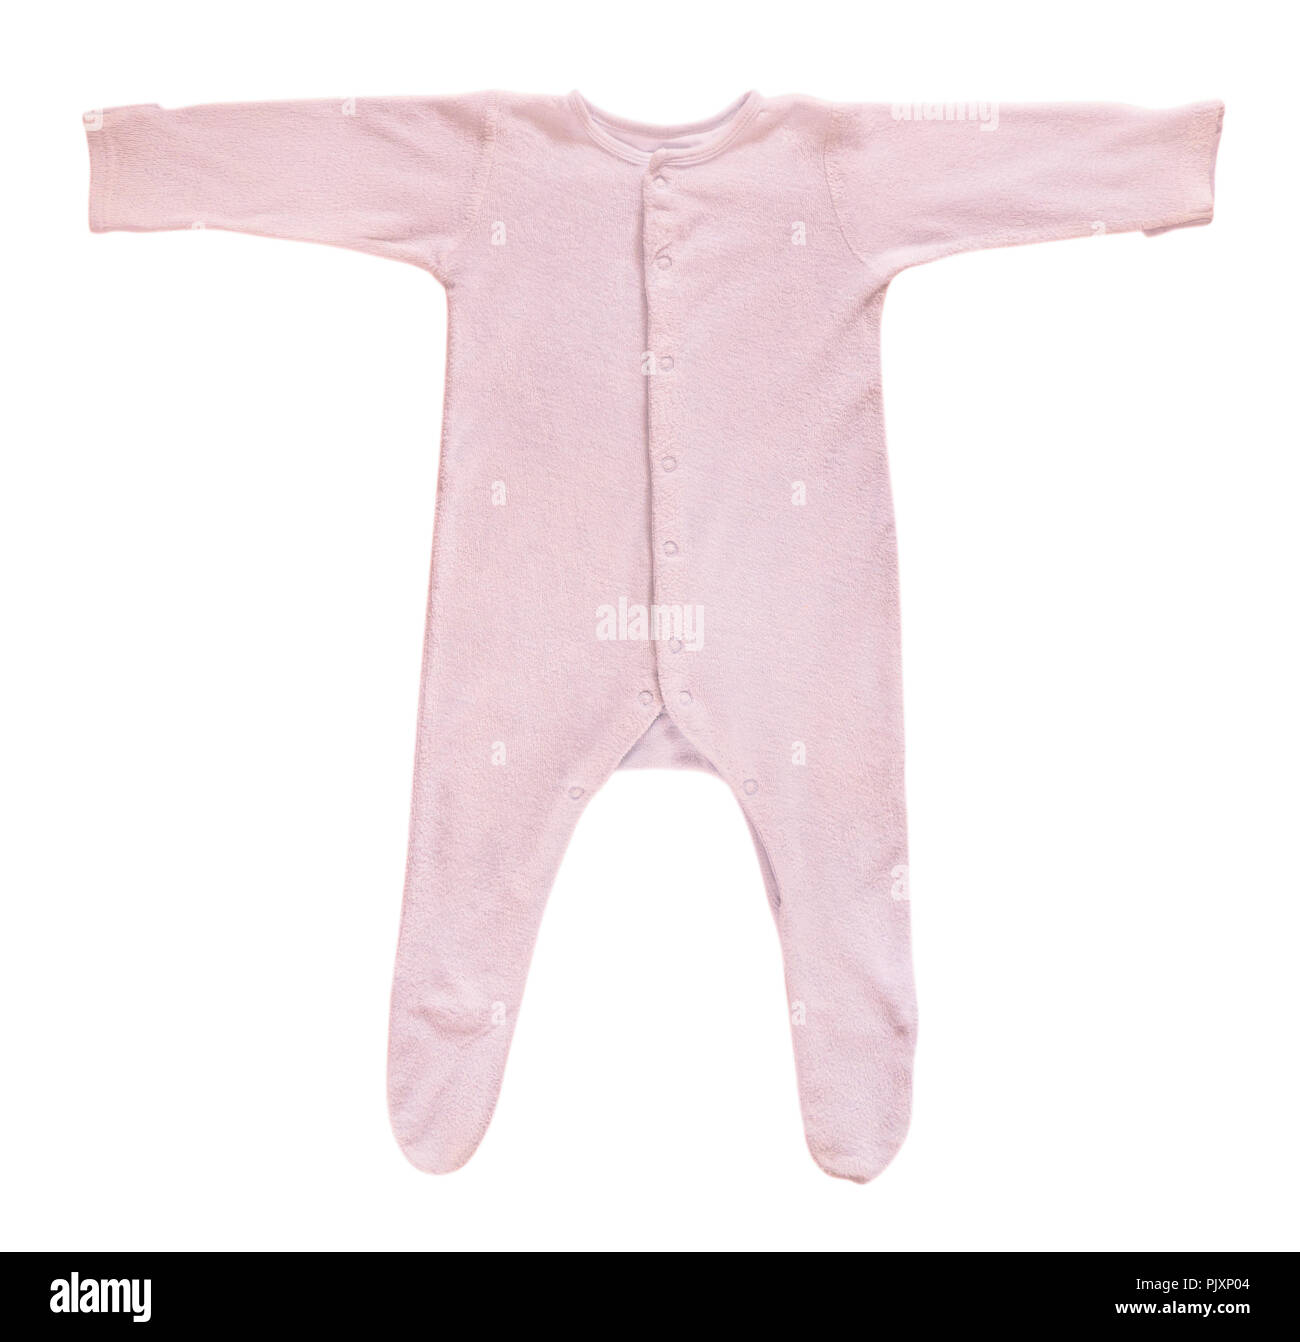 9874f7d56 Pink Baby Child Clothes Suit Clothing Stock Photos   Pink Baby Child ...